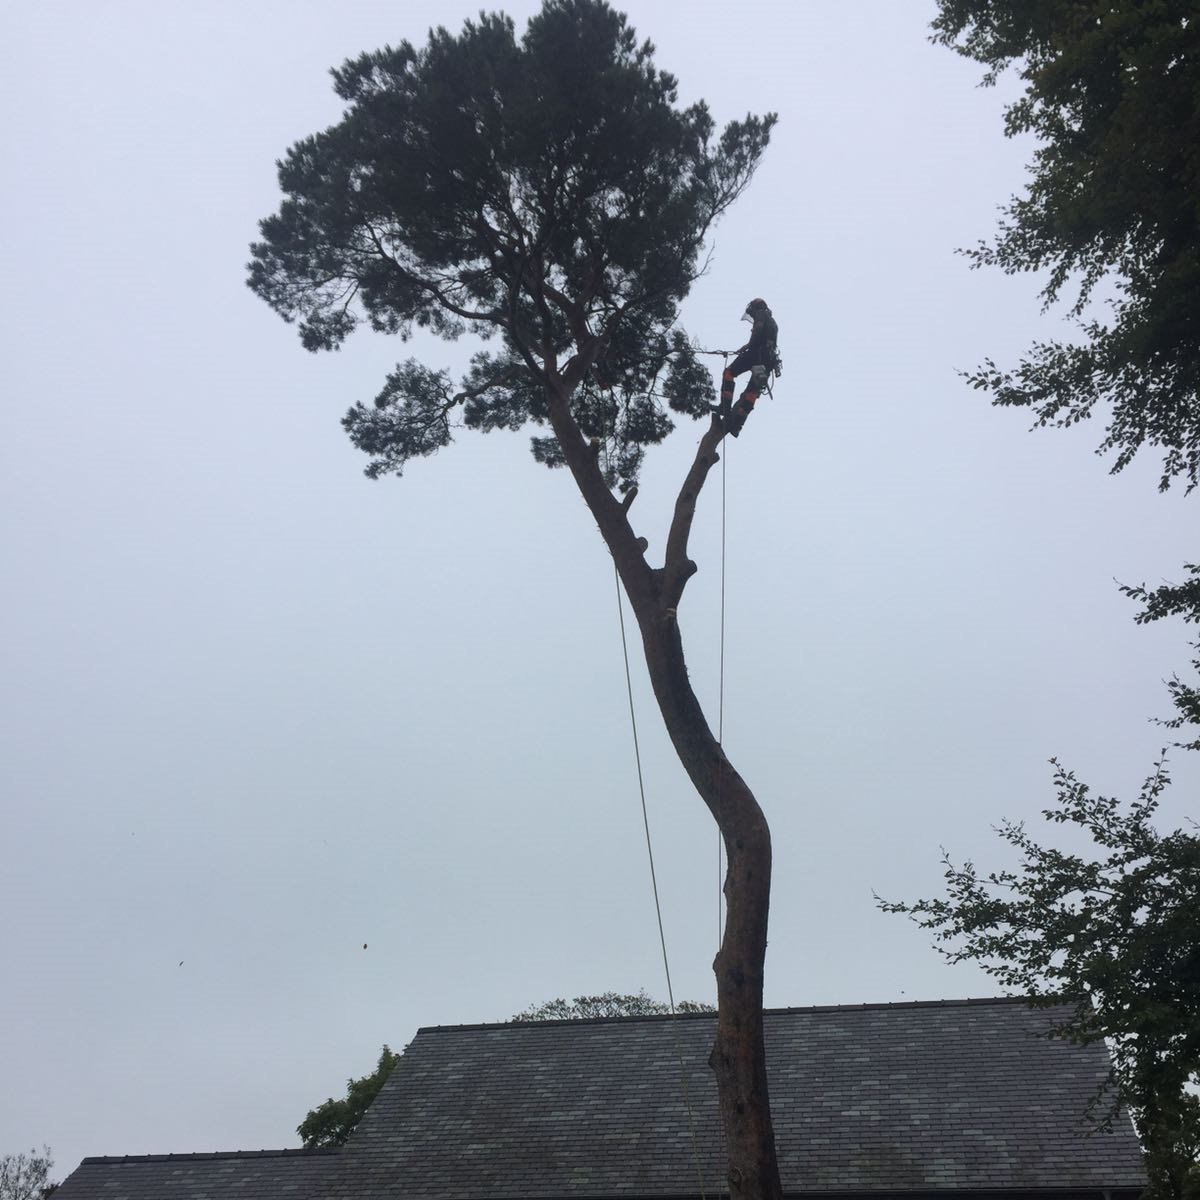 Tree Services in Betws y Coed